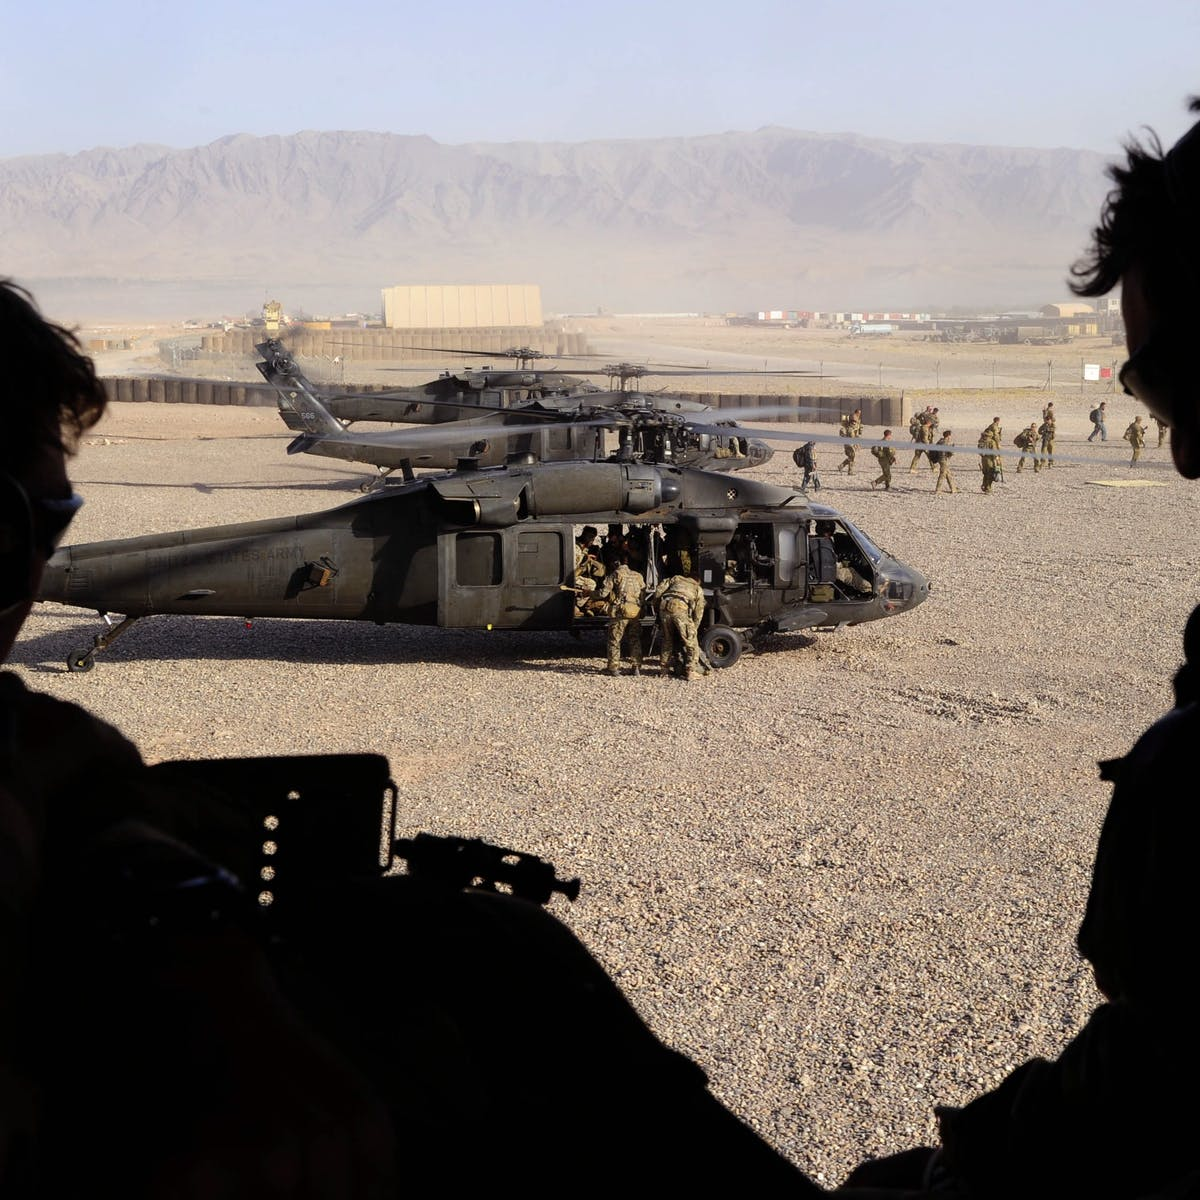 Why Australia should face civil lawsuits over soldier